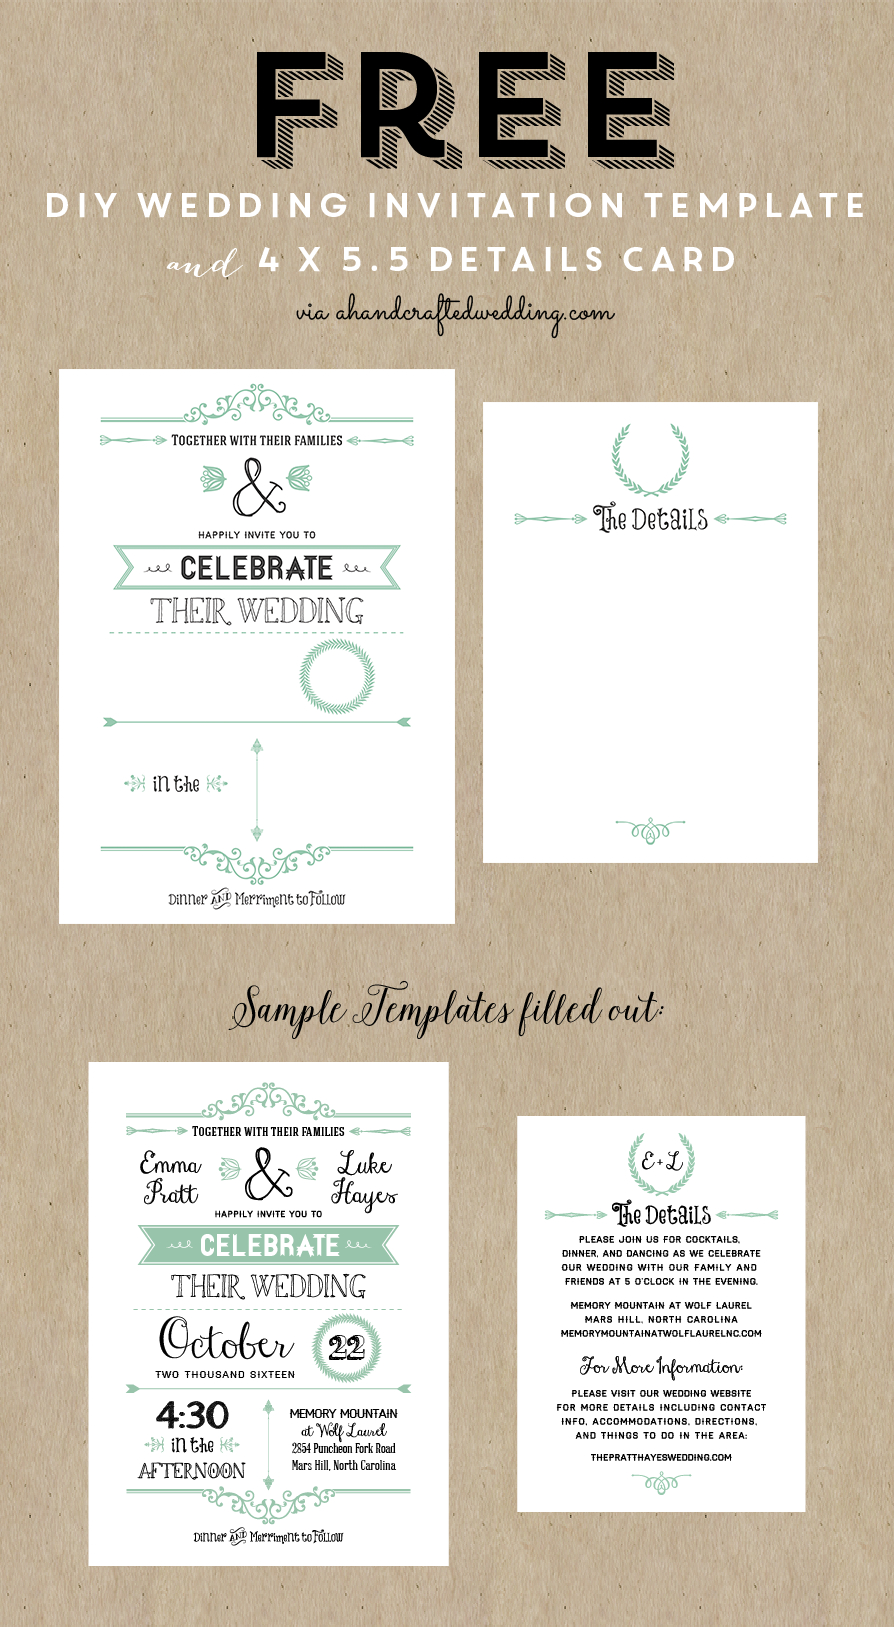 Free Printable Wedding Invitation Template | Wedding | Pinterest - Free Printable Wedding Invitations